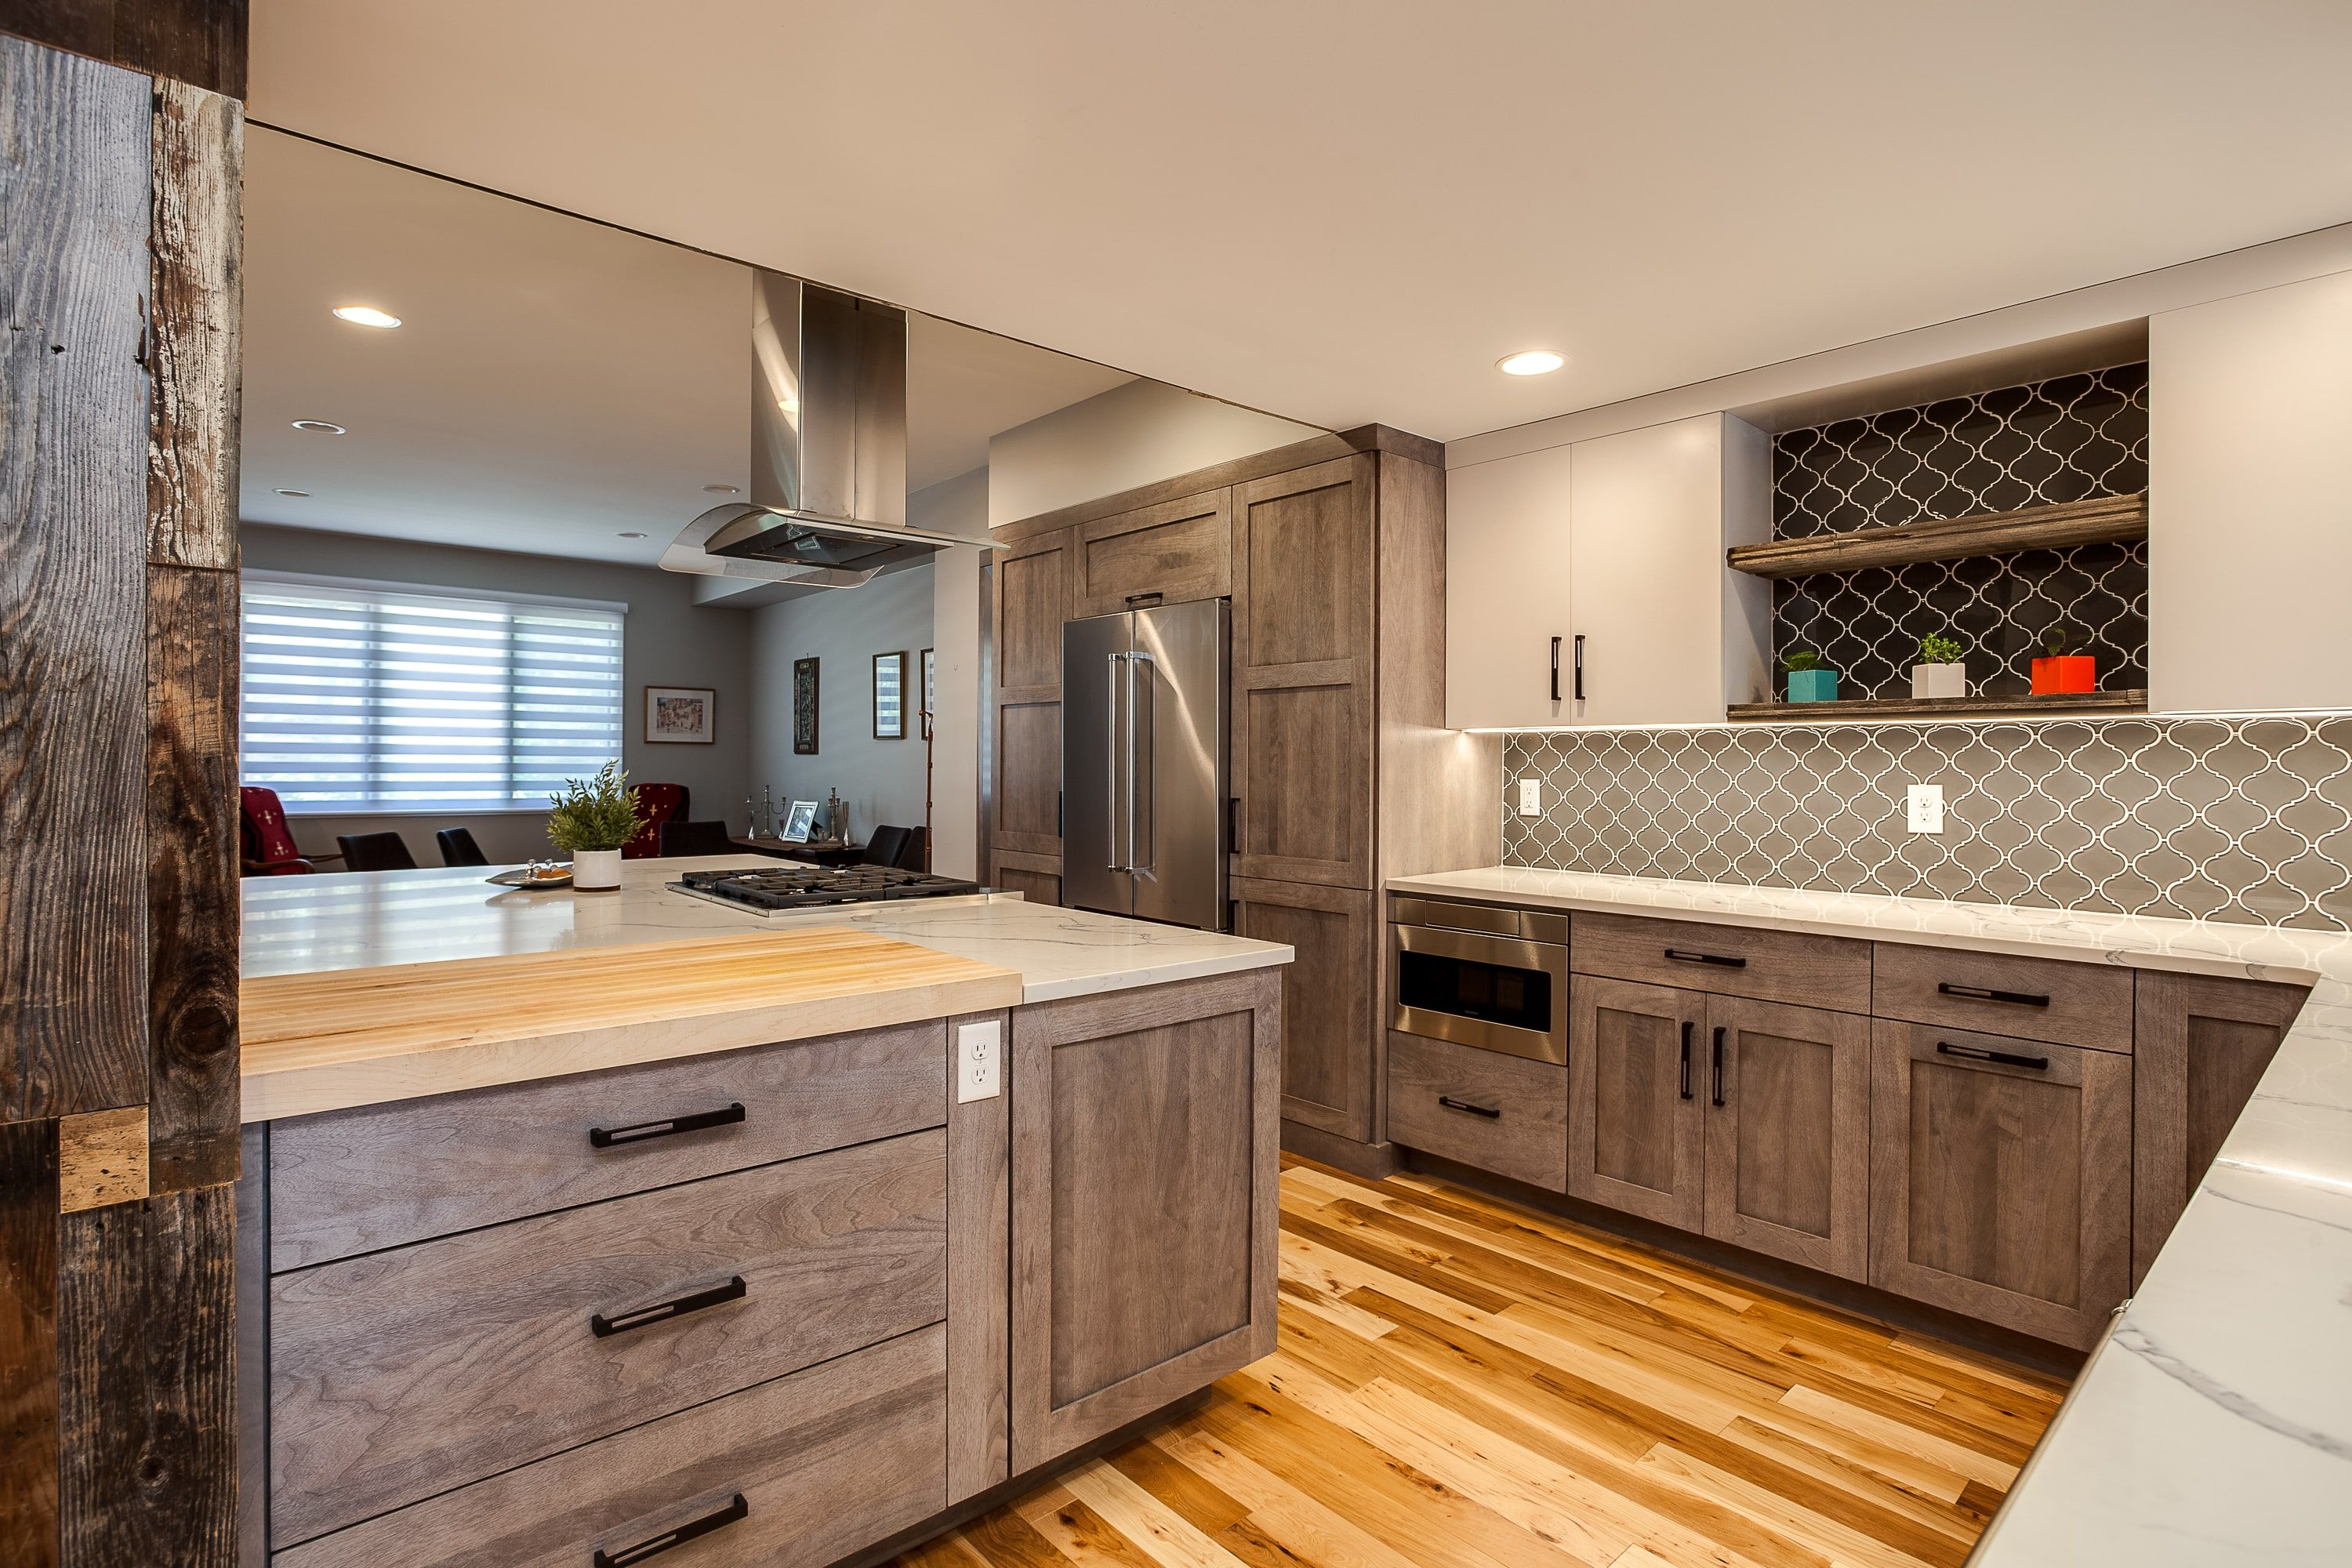 Find The Right Floor For Your Kitchen Jm Kitchen And Bath Https Www Jmwoodworks Natural Wood Kitchen Natural Wood Kitchen Cabinets Kitchen Cabinet Remodel